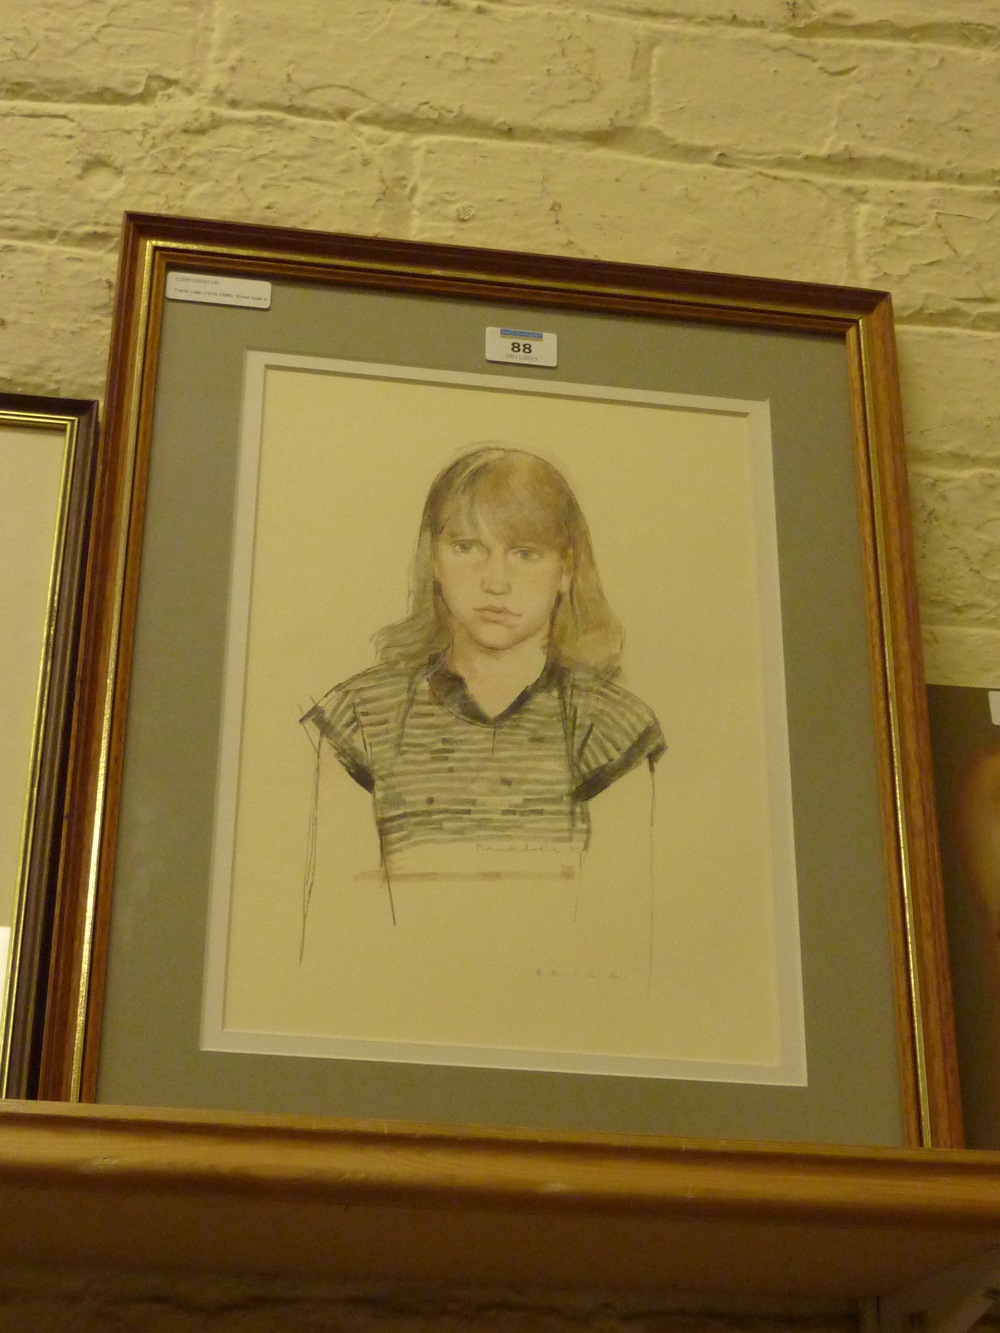 Lot 88 - Frank Lisle (1916-1986): 'Erica' - bust portrait, pencil and coloured crayon by Frank Lisle (1916-